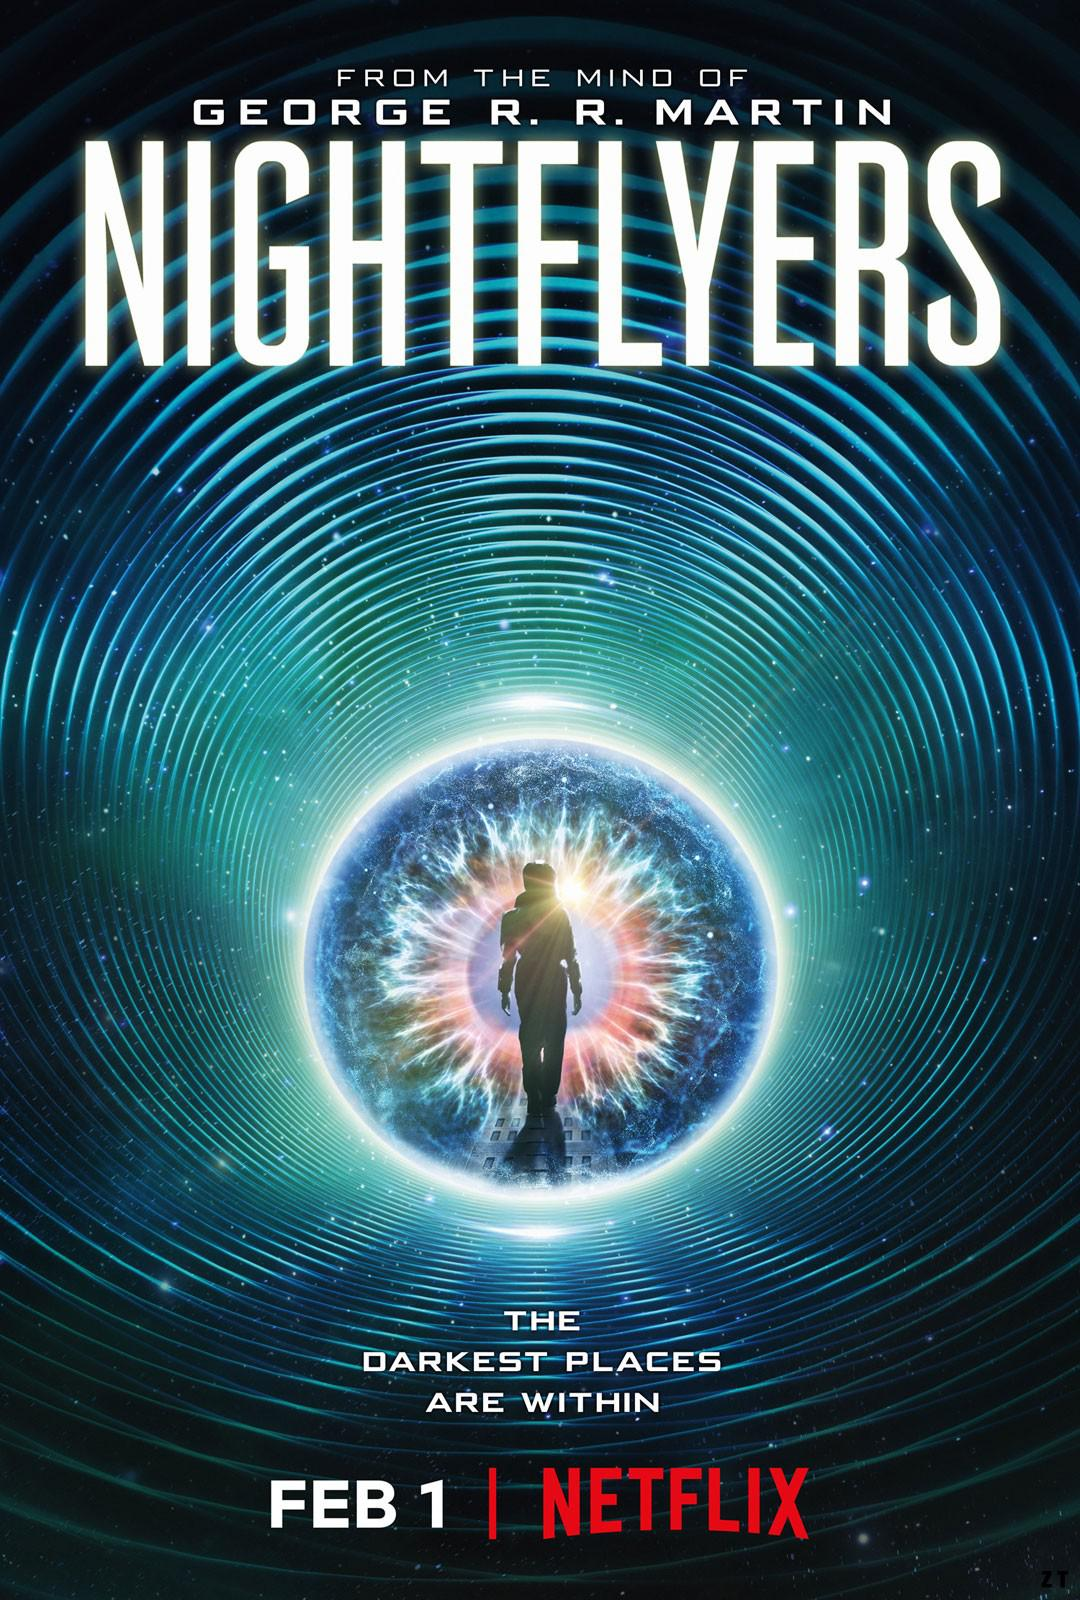 Telecharger Nightflyers- Saison 1 [COMPLETE] [10/10] FRENCH | Qualité HD 720p